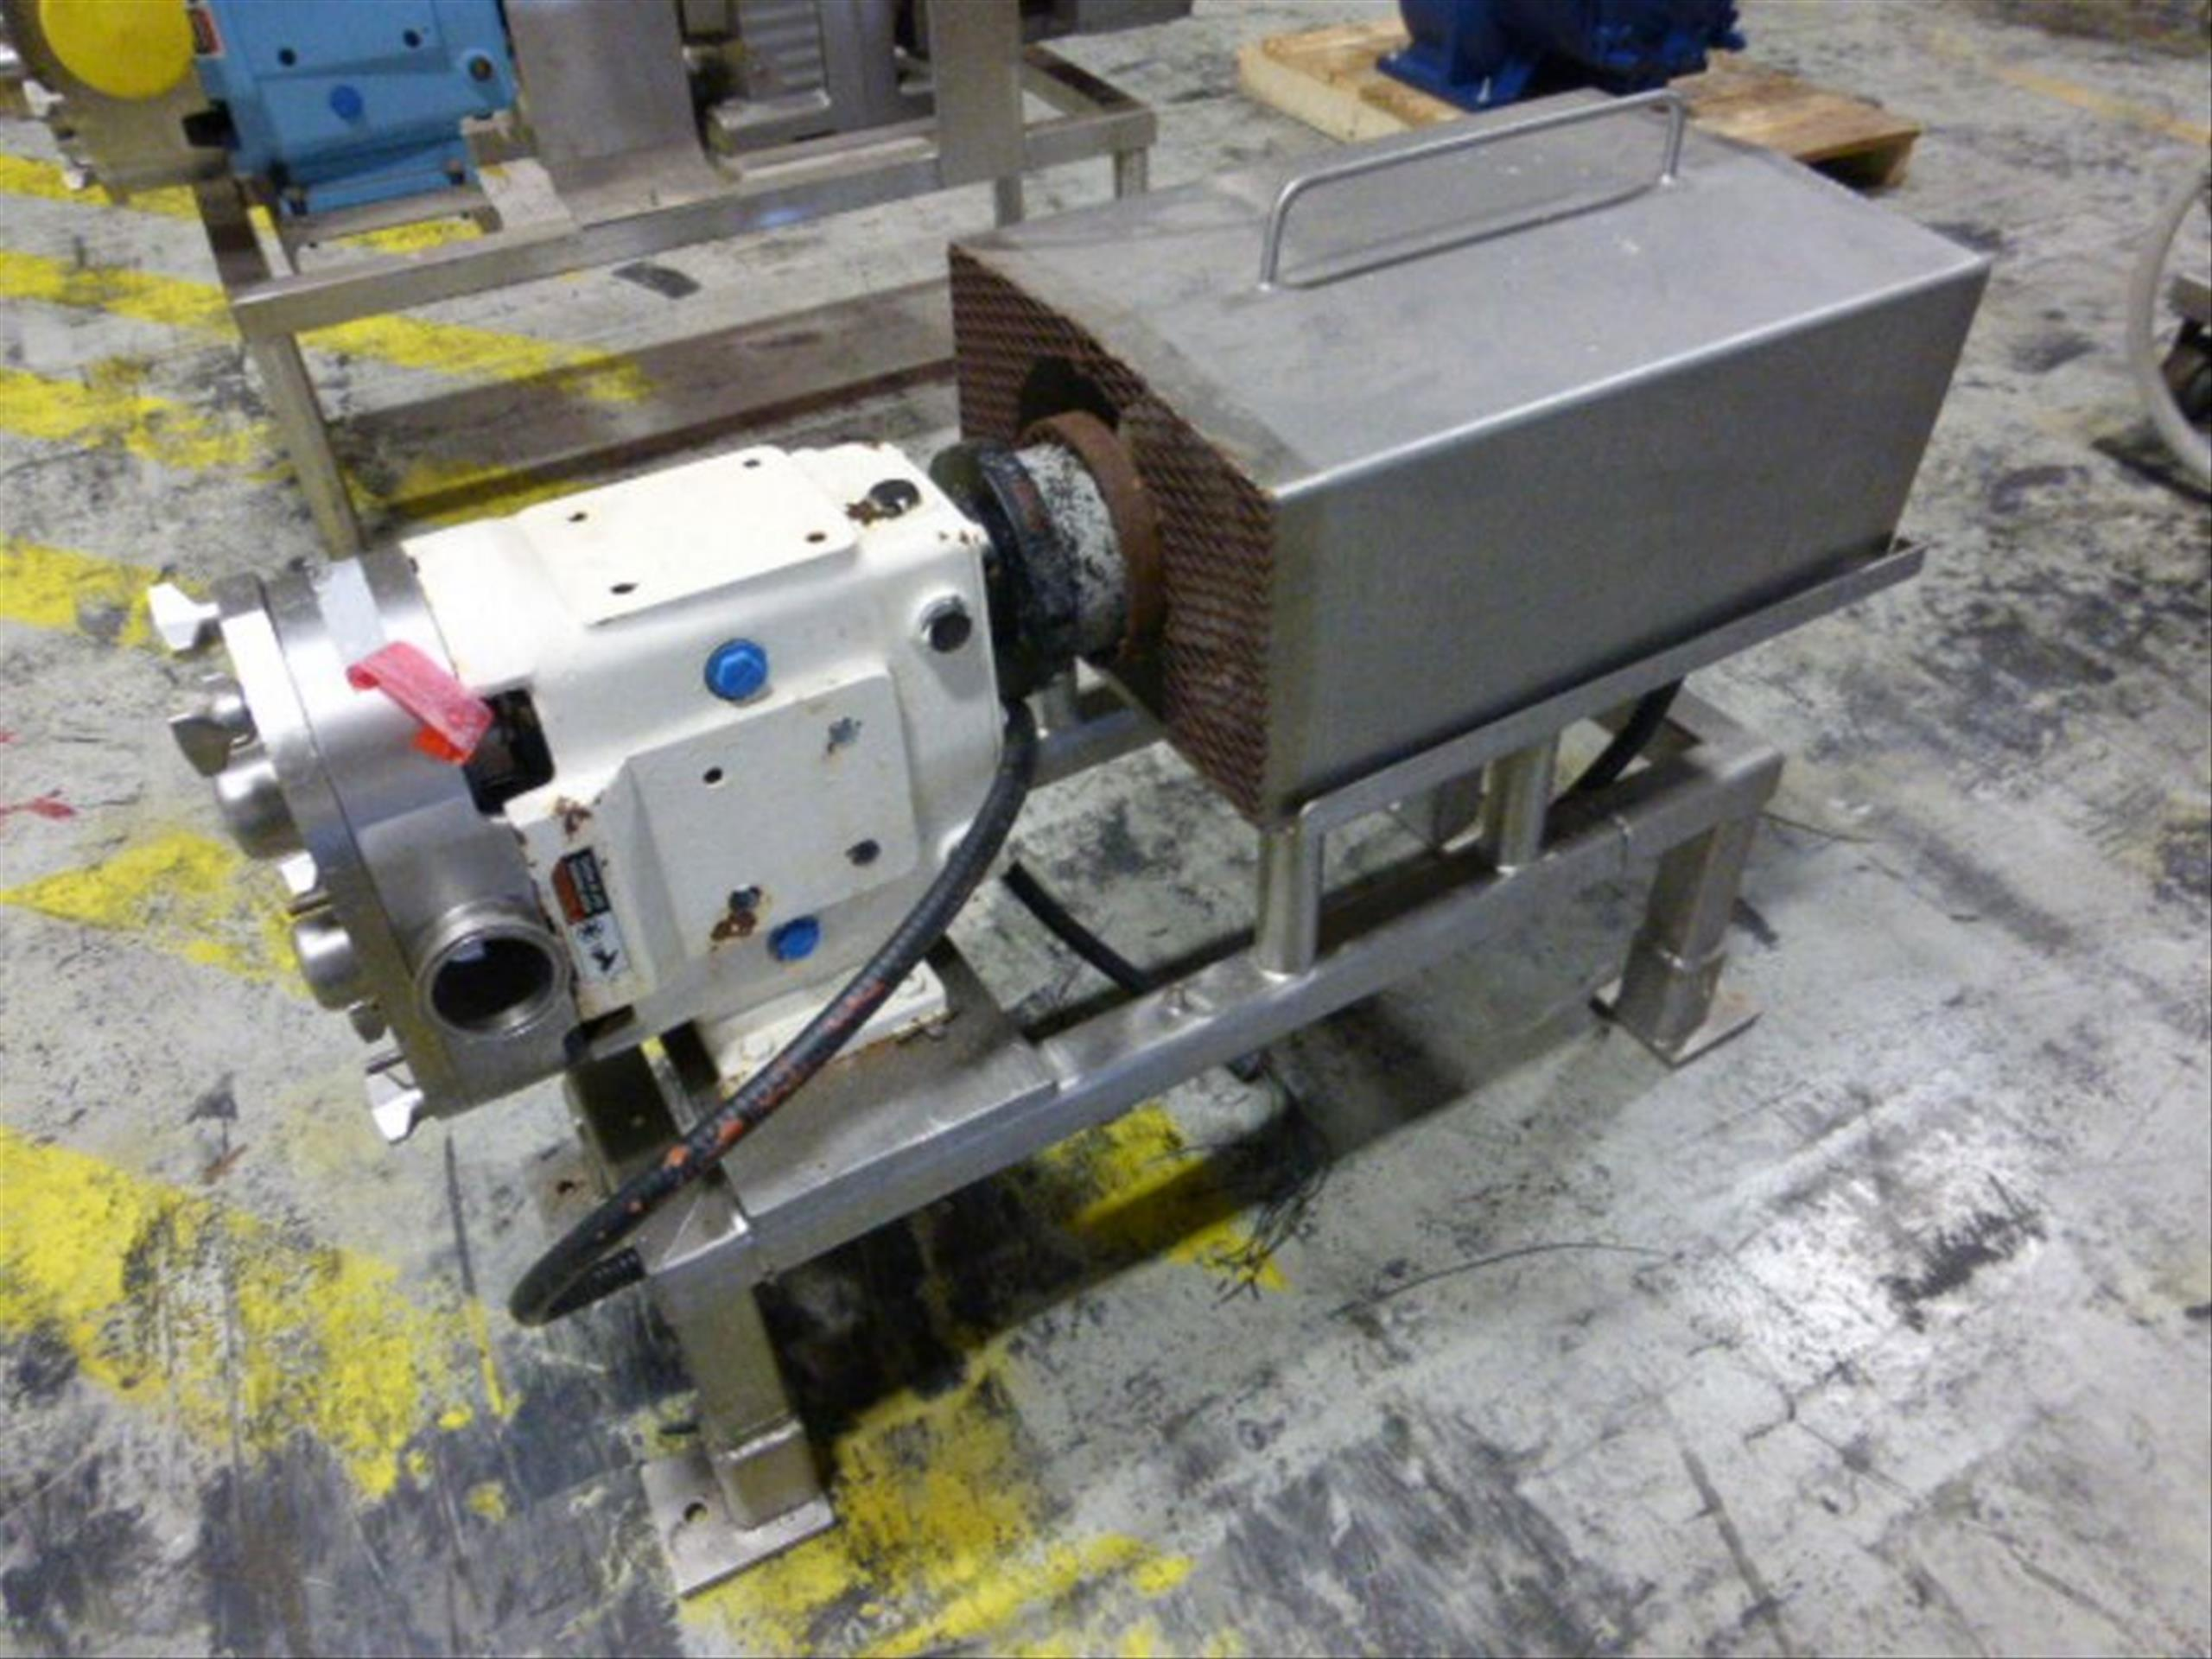 SPX 2.5 in stainless positive displacement pump, model 060 UI, ser. no 415645-13, with 5 hp motor,